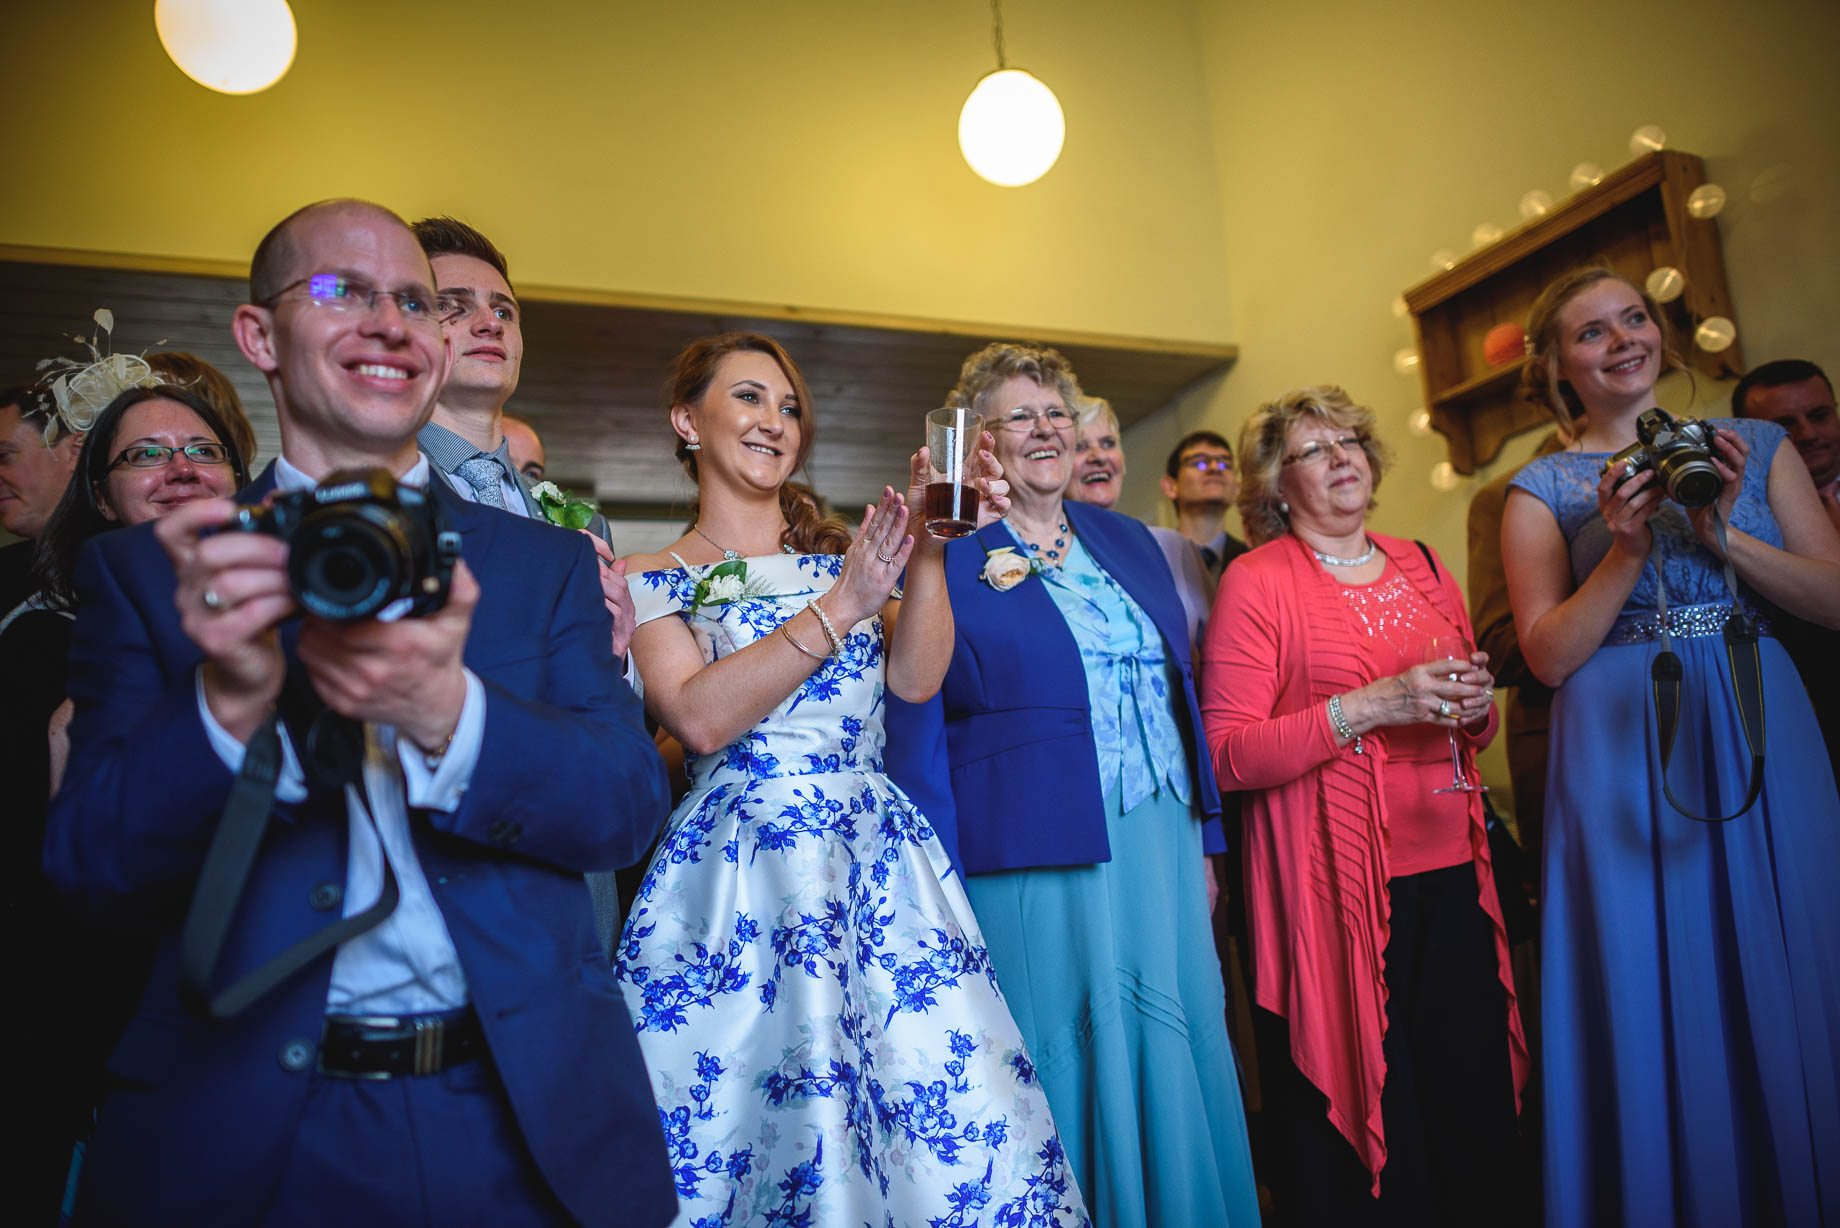 Hampshire wedding photography by Guy Collier - Emily and Tom (158 of 164)